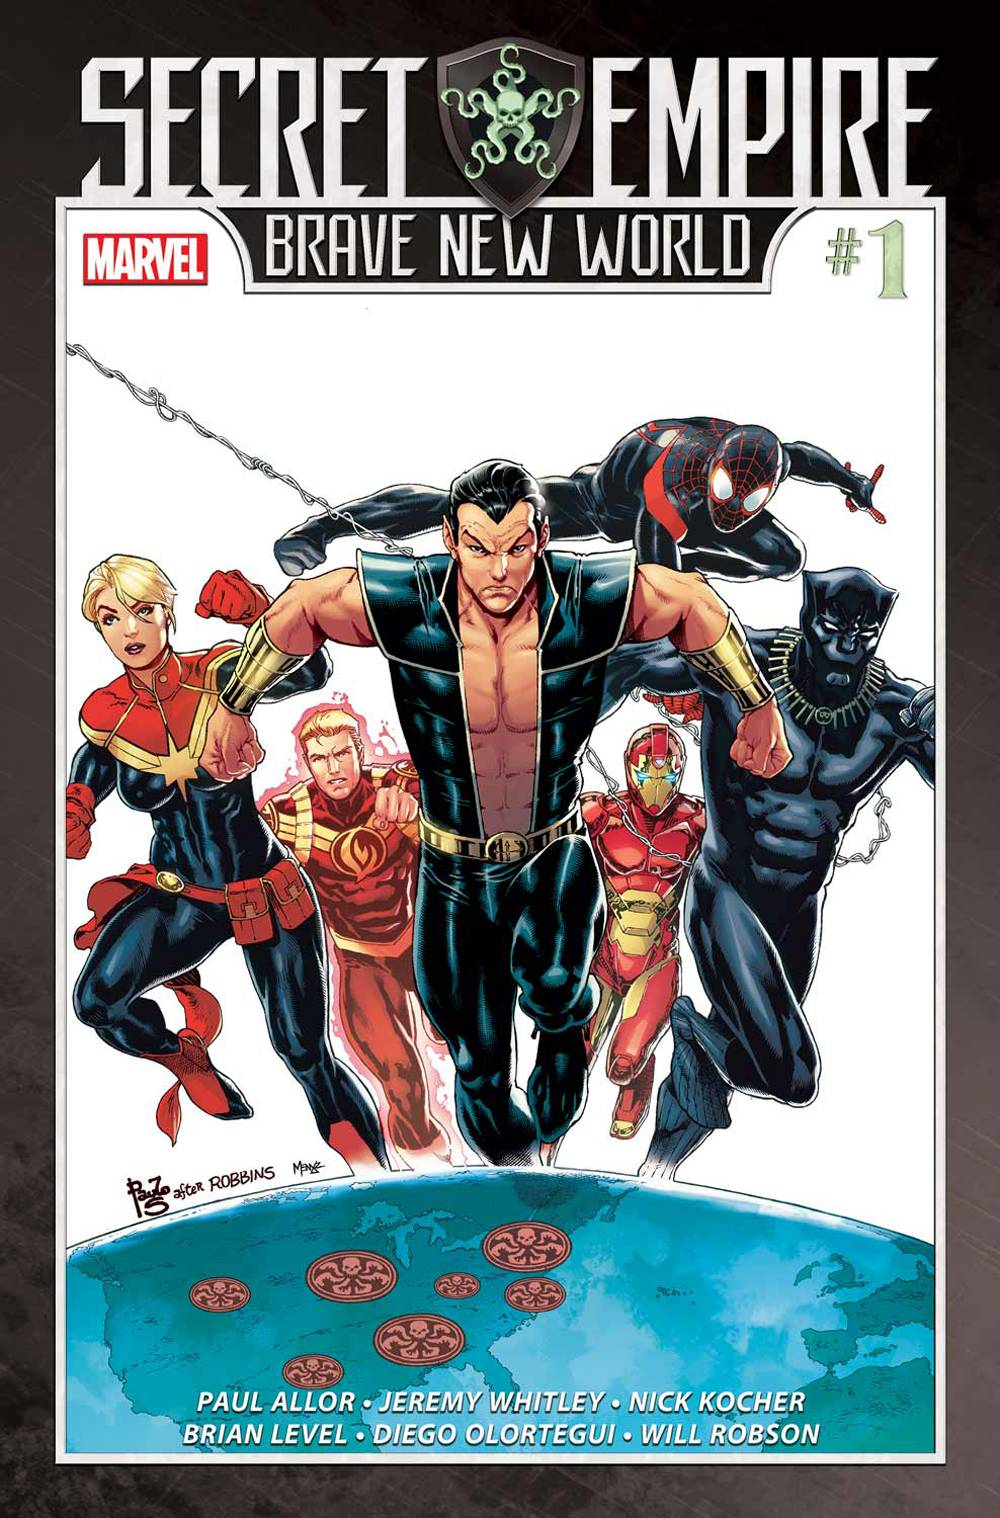 SECRET EMPIRE BRAVE NEW WORLD 1 of 5 SE.jpg